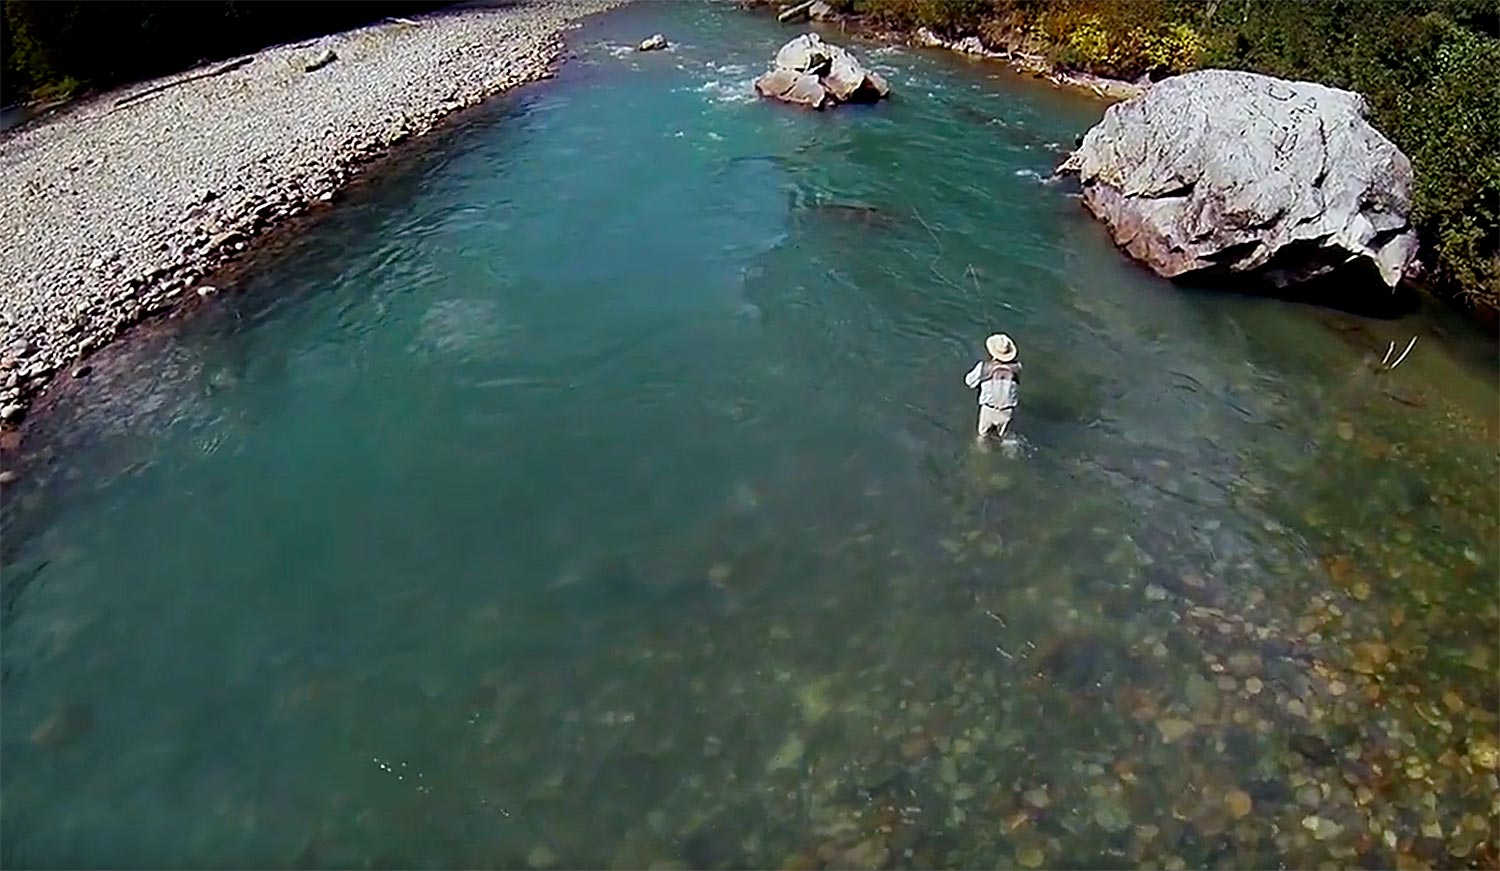 59ec035161c0 Take a few minutes to fish the Cascades with Todd Moen and Brian OKeefe.  The boys from Catch Magazine are hard at work in the Pacific Northwest.